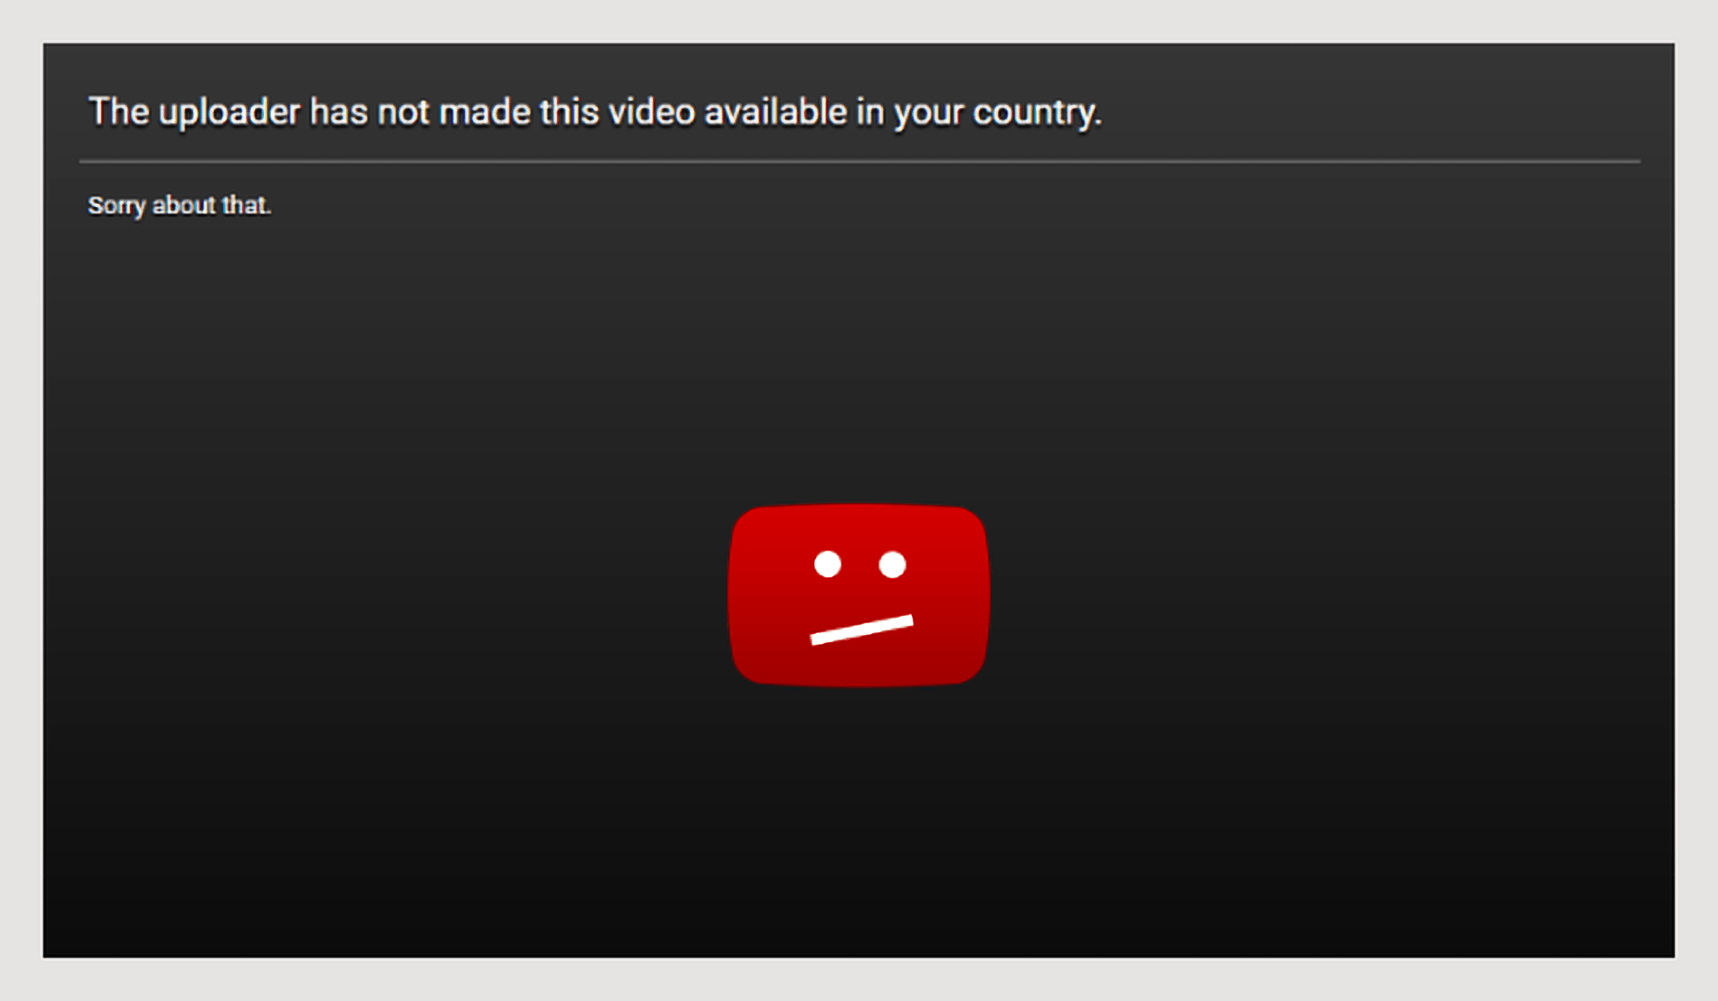 Video-is-not-available-in-your-country